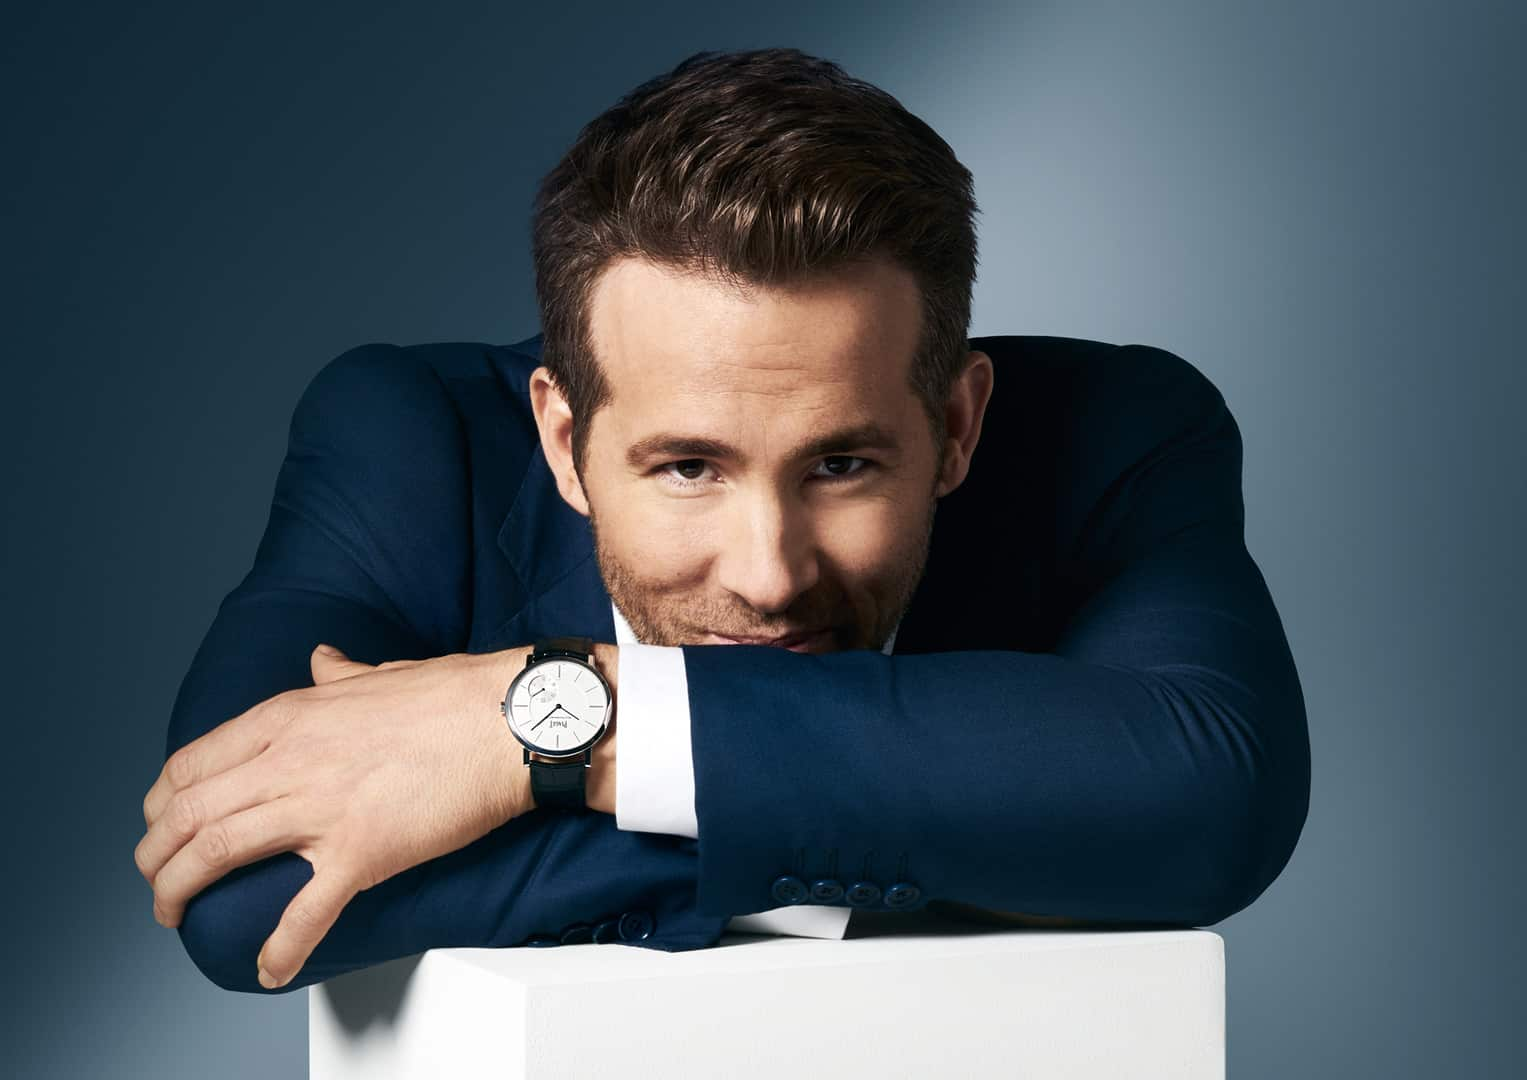 Piaget Is Delighted To Introduce Ryan Reynolds As Its International Brand Ambassador